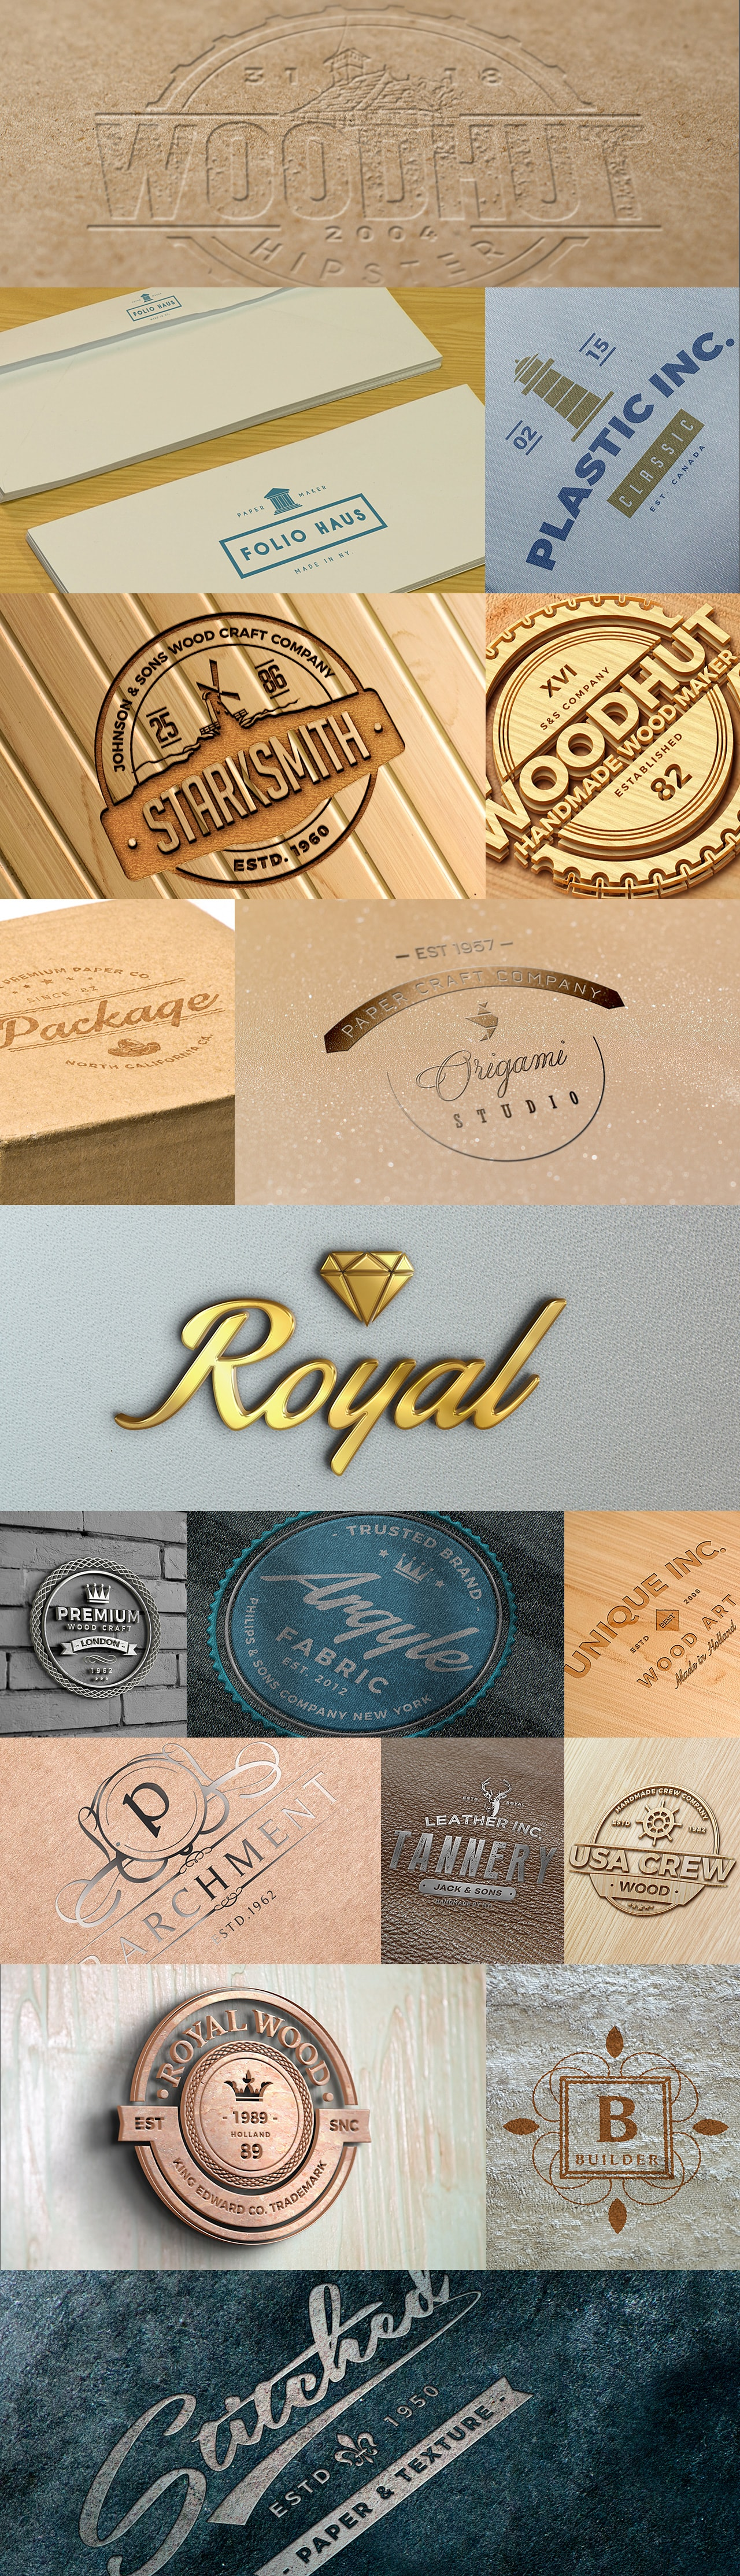 logo-mockups-bundle-engraved-bevelled-wood-carving-psd